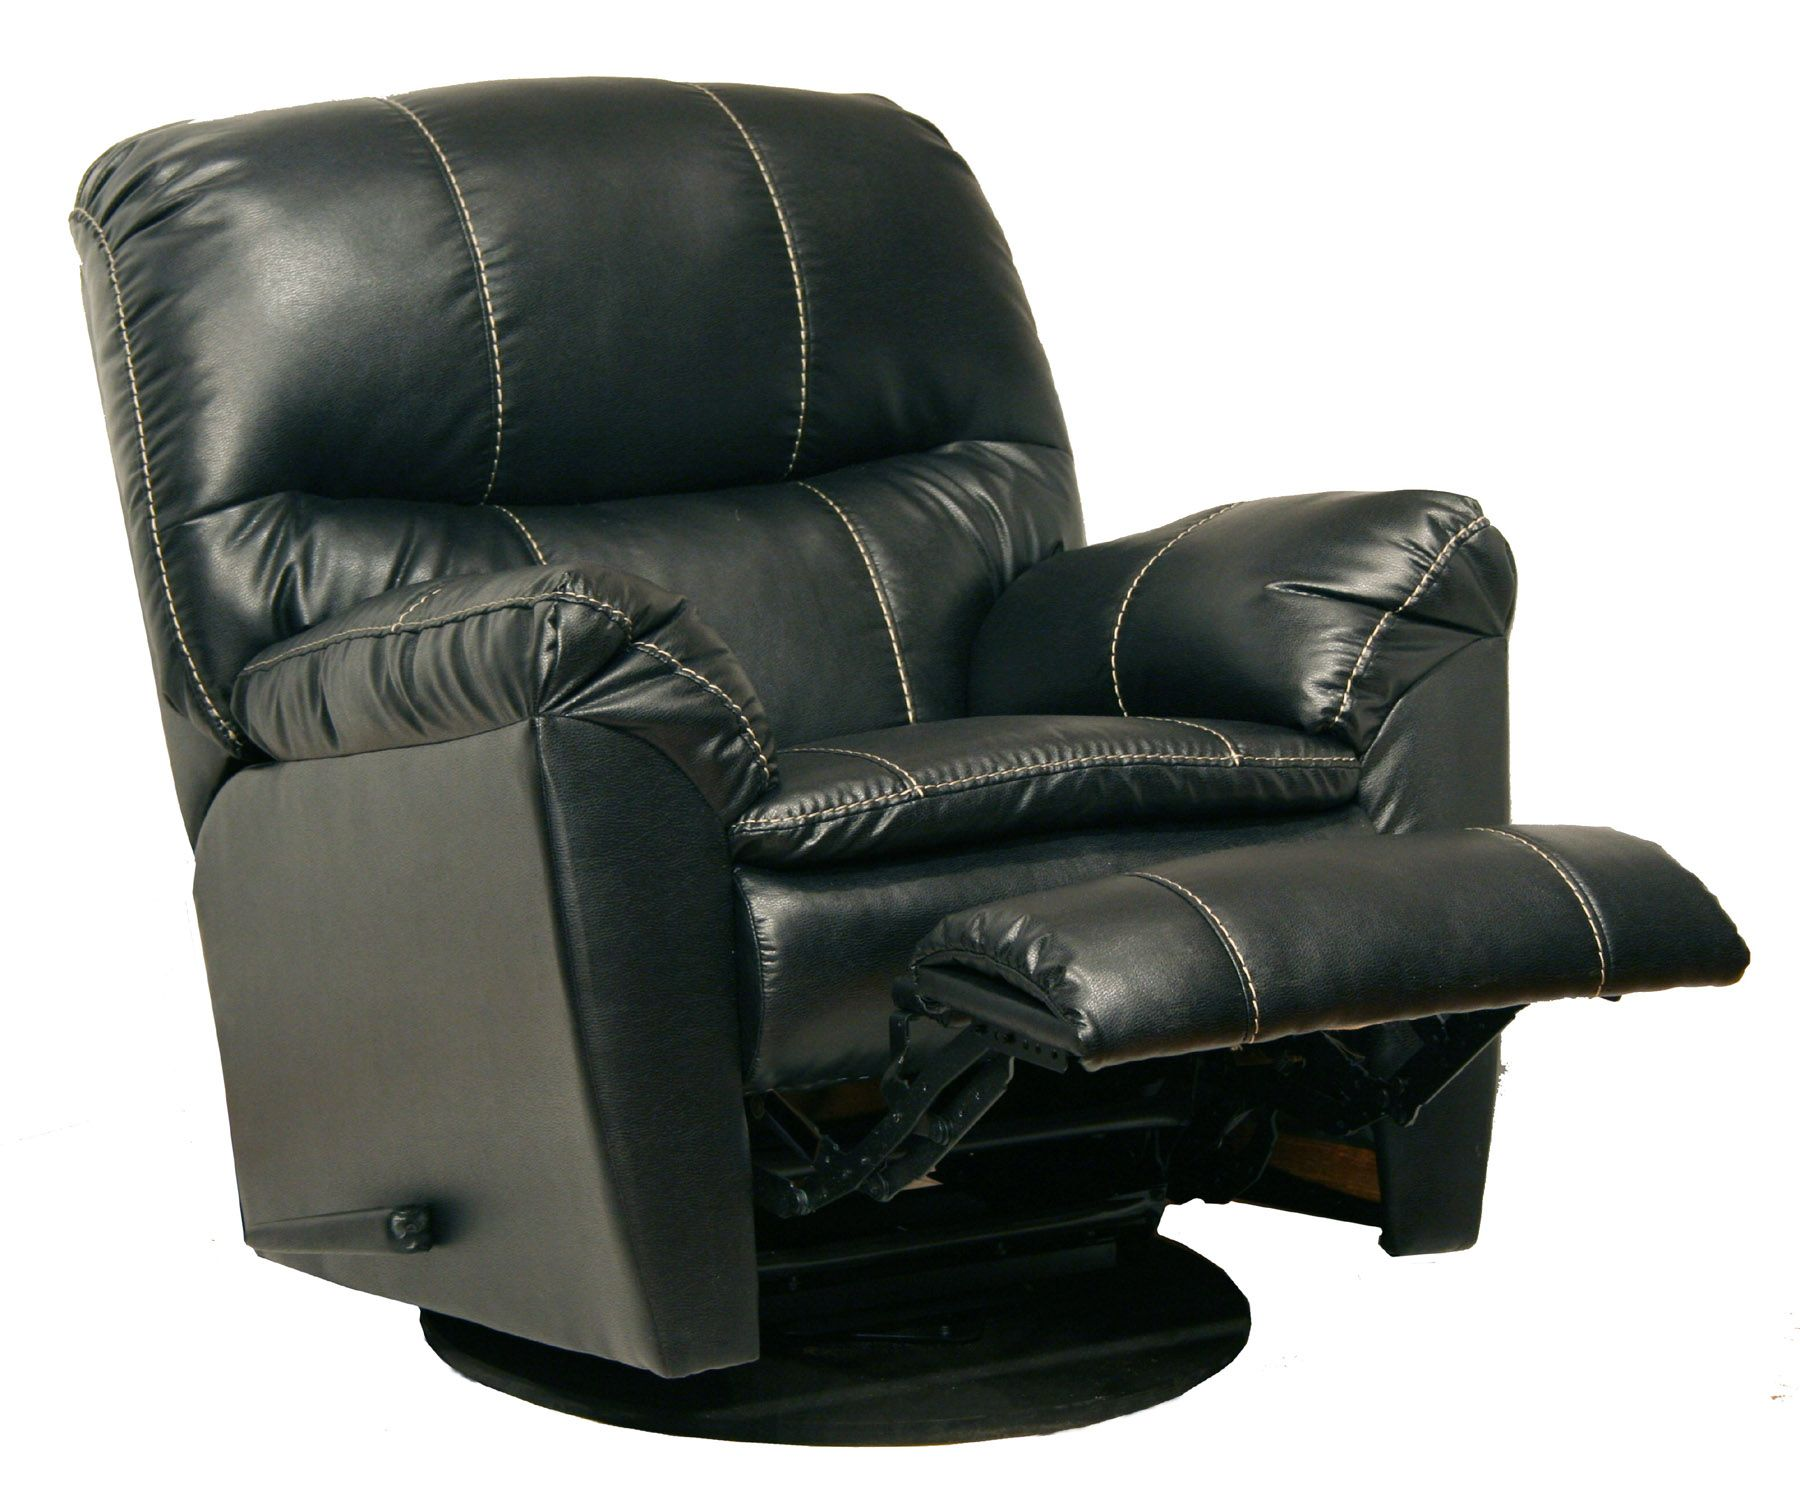 "Catnapper Cosmo "" Bonded"" Leather Swivel Glider Recliner"